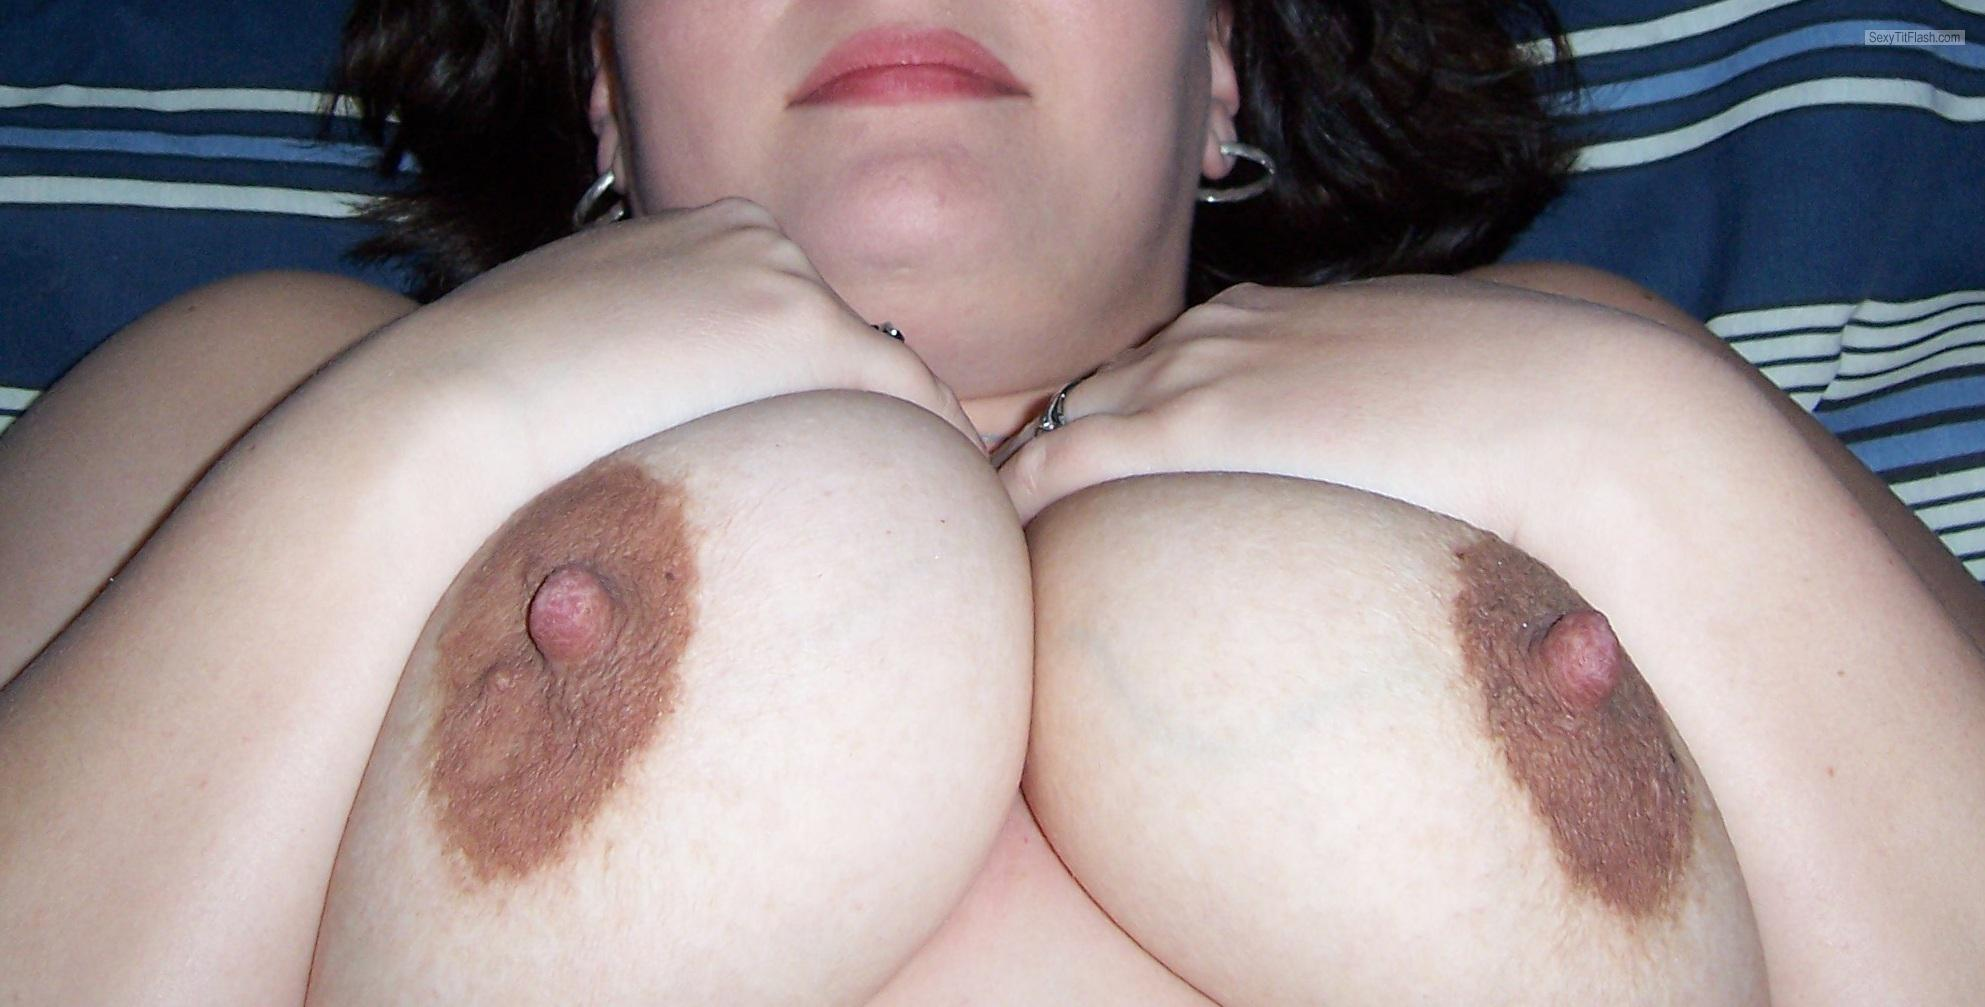 Tit Flash: Ex-Wife's Very Big Tits - T from United States